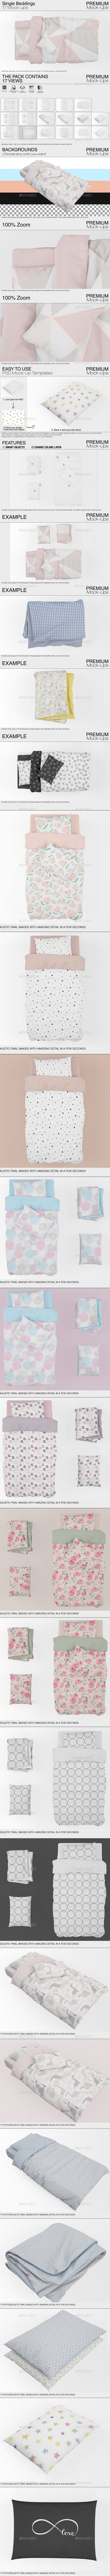 GraphicRiver Single Bedding Mockup Pack 20963497